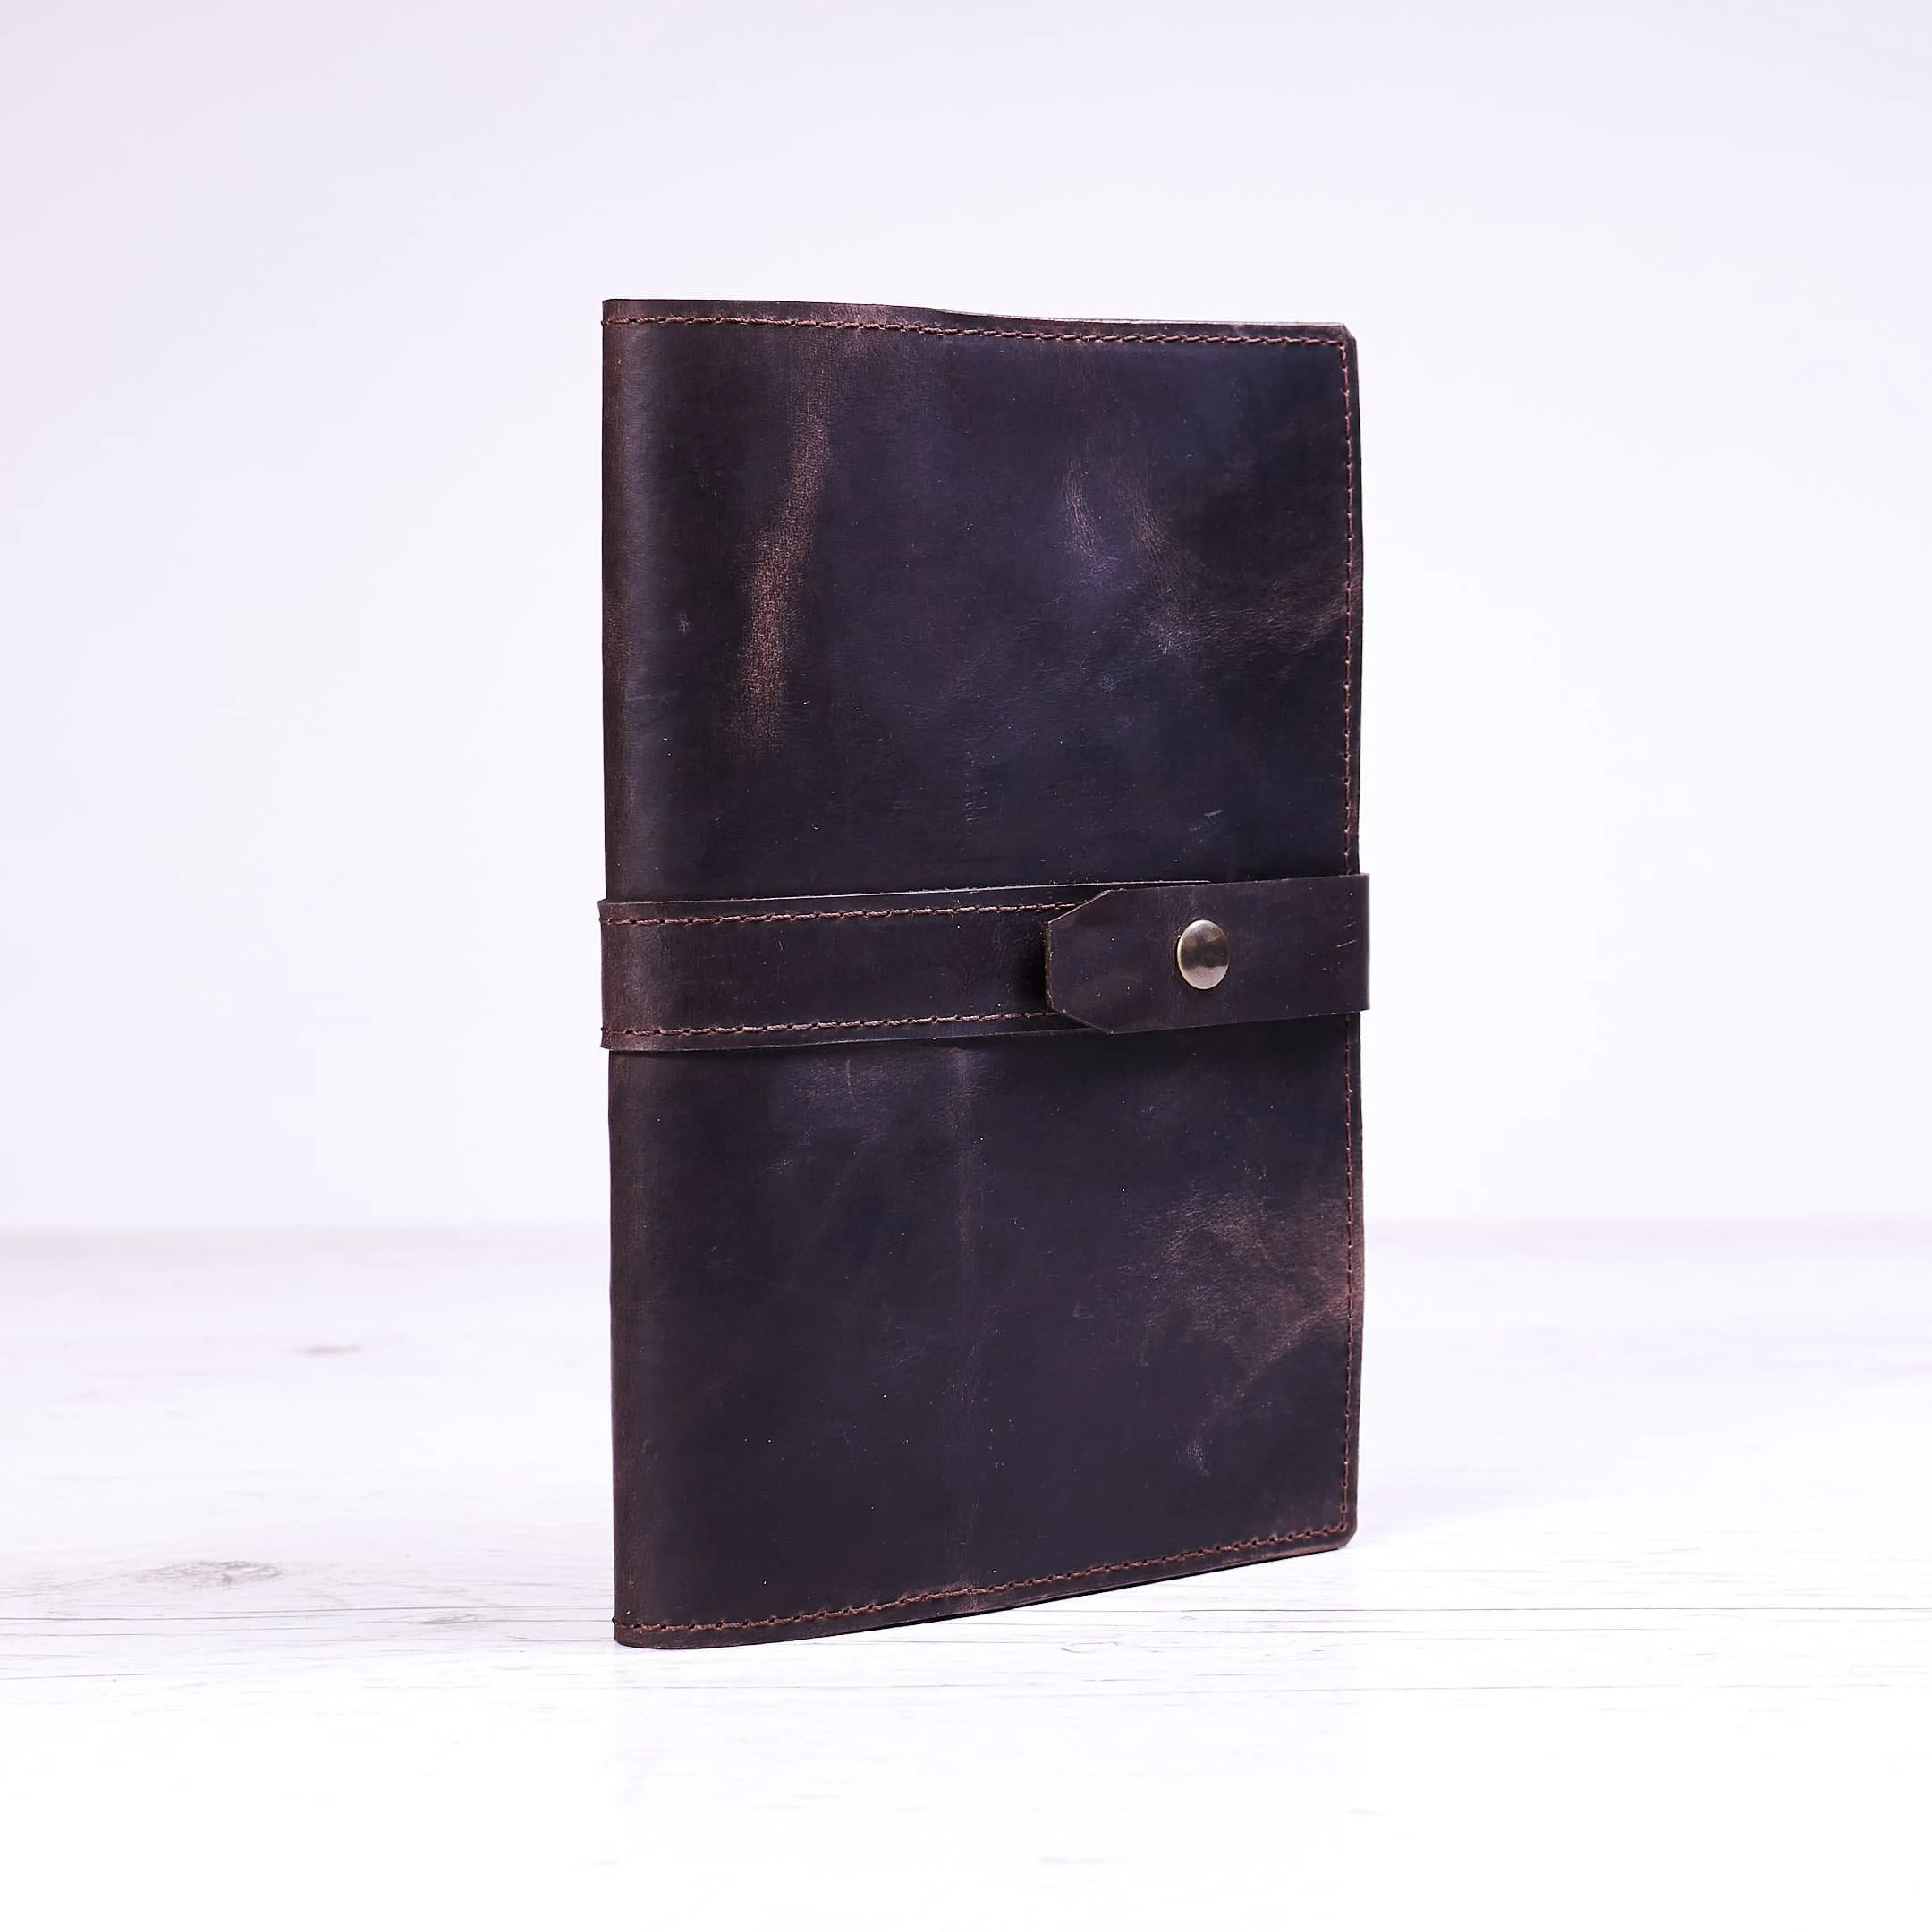 Moleskine A5 Dark Brown A5 Leather Journal Cover Notebook Cover Notebook